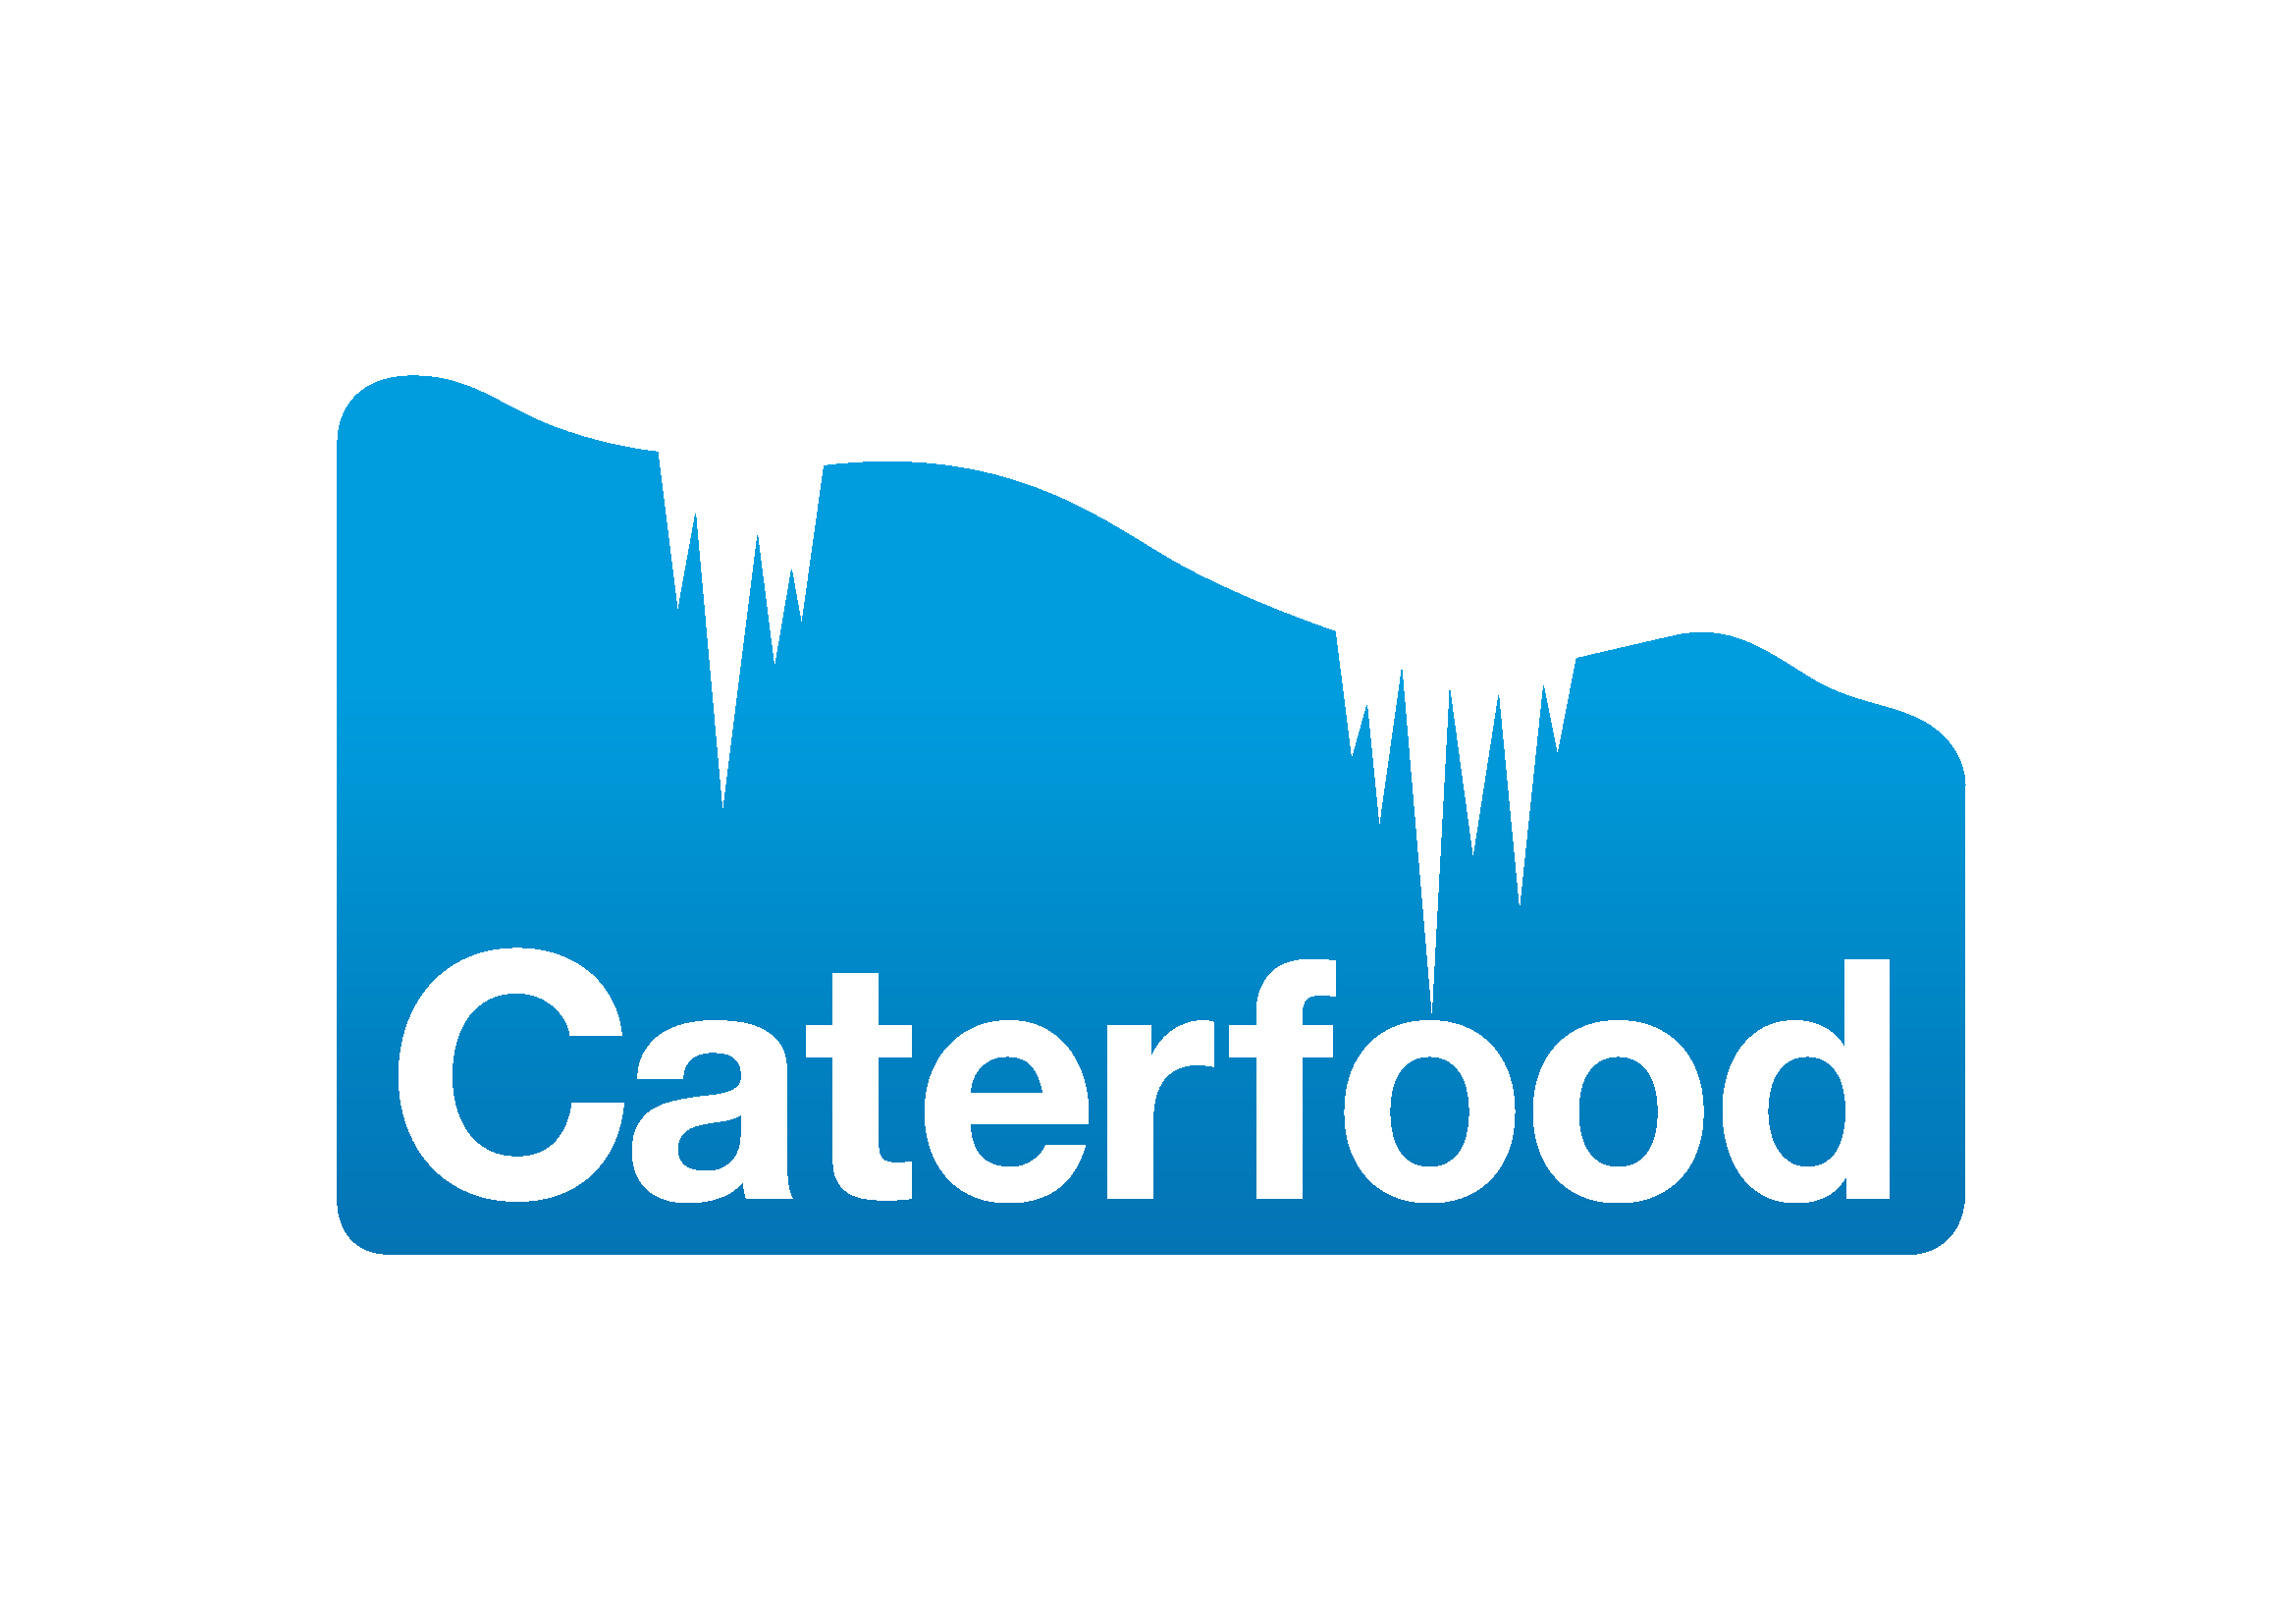 Caterfood logo.png